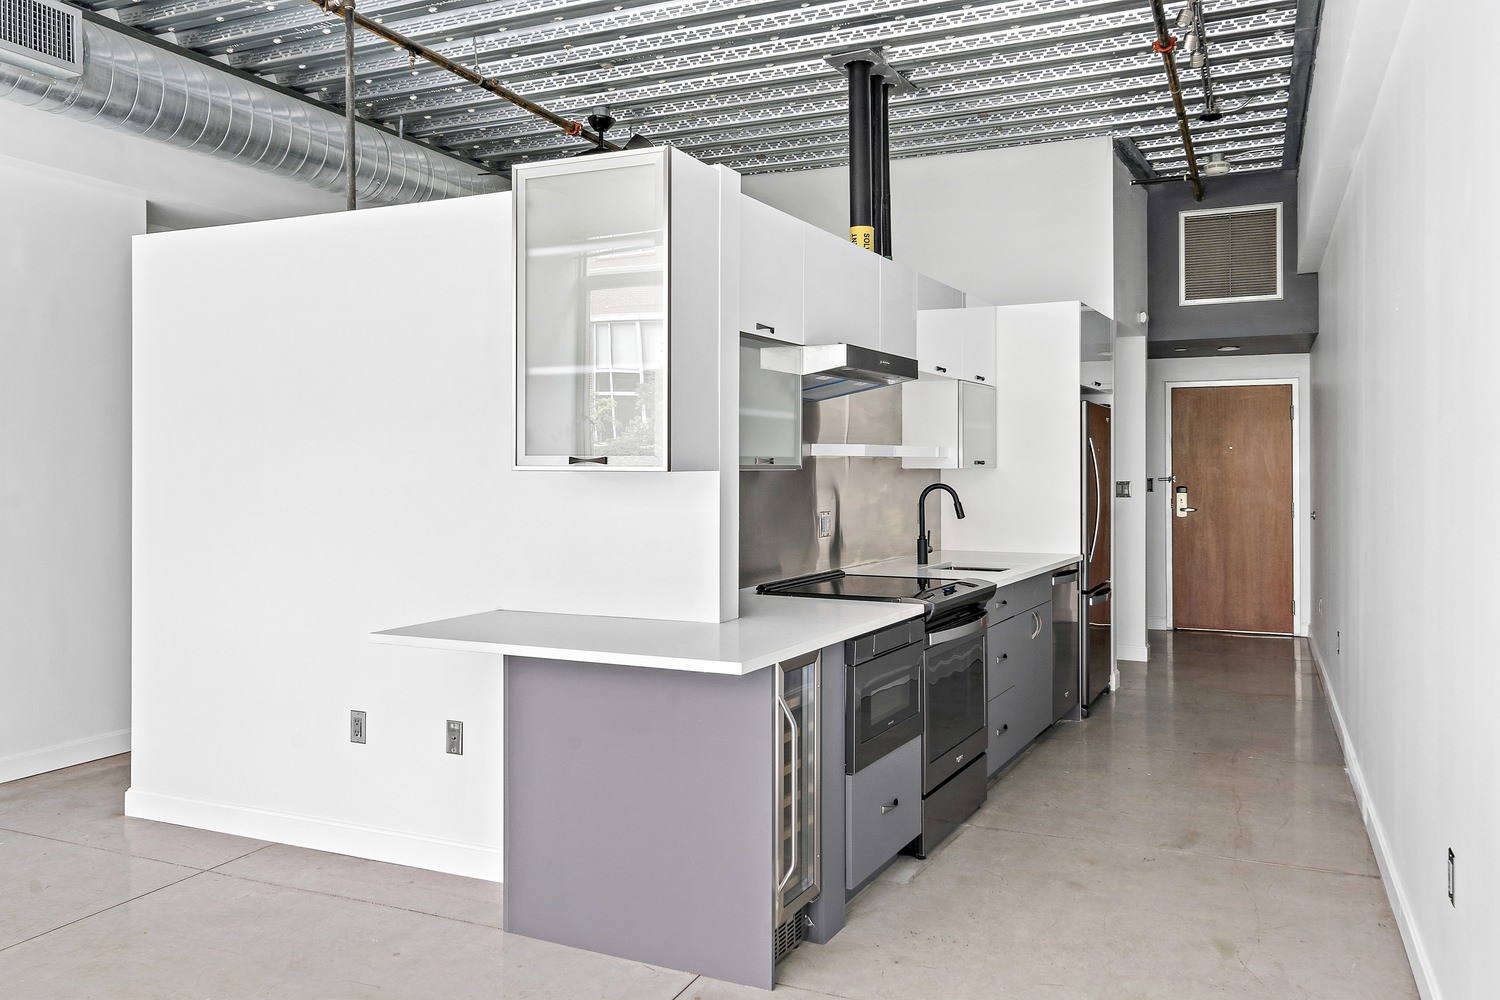 Kitchen and living room area of an apartment that has white walls and tiled floors.